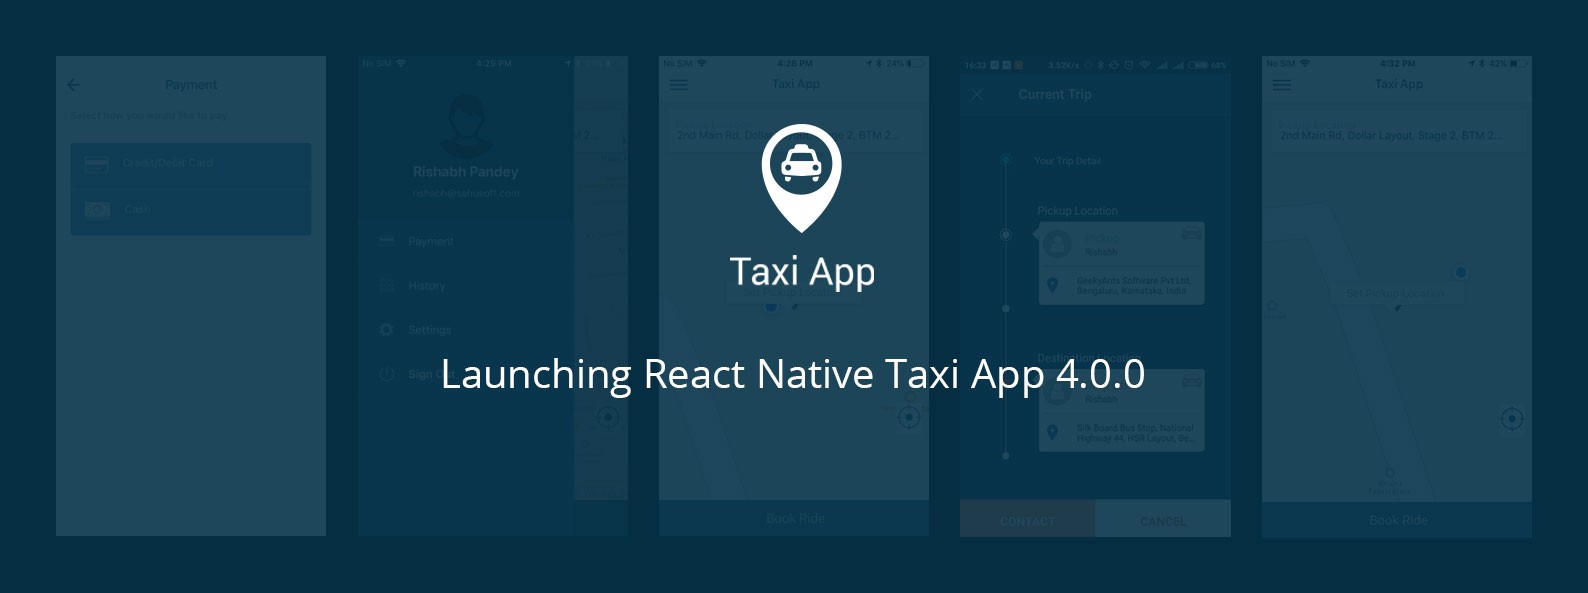 Launching React Native Taxi App 4 0 0 - The GeekyAnts Blog